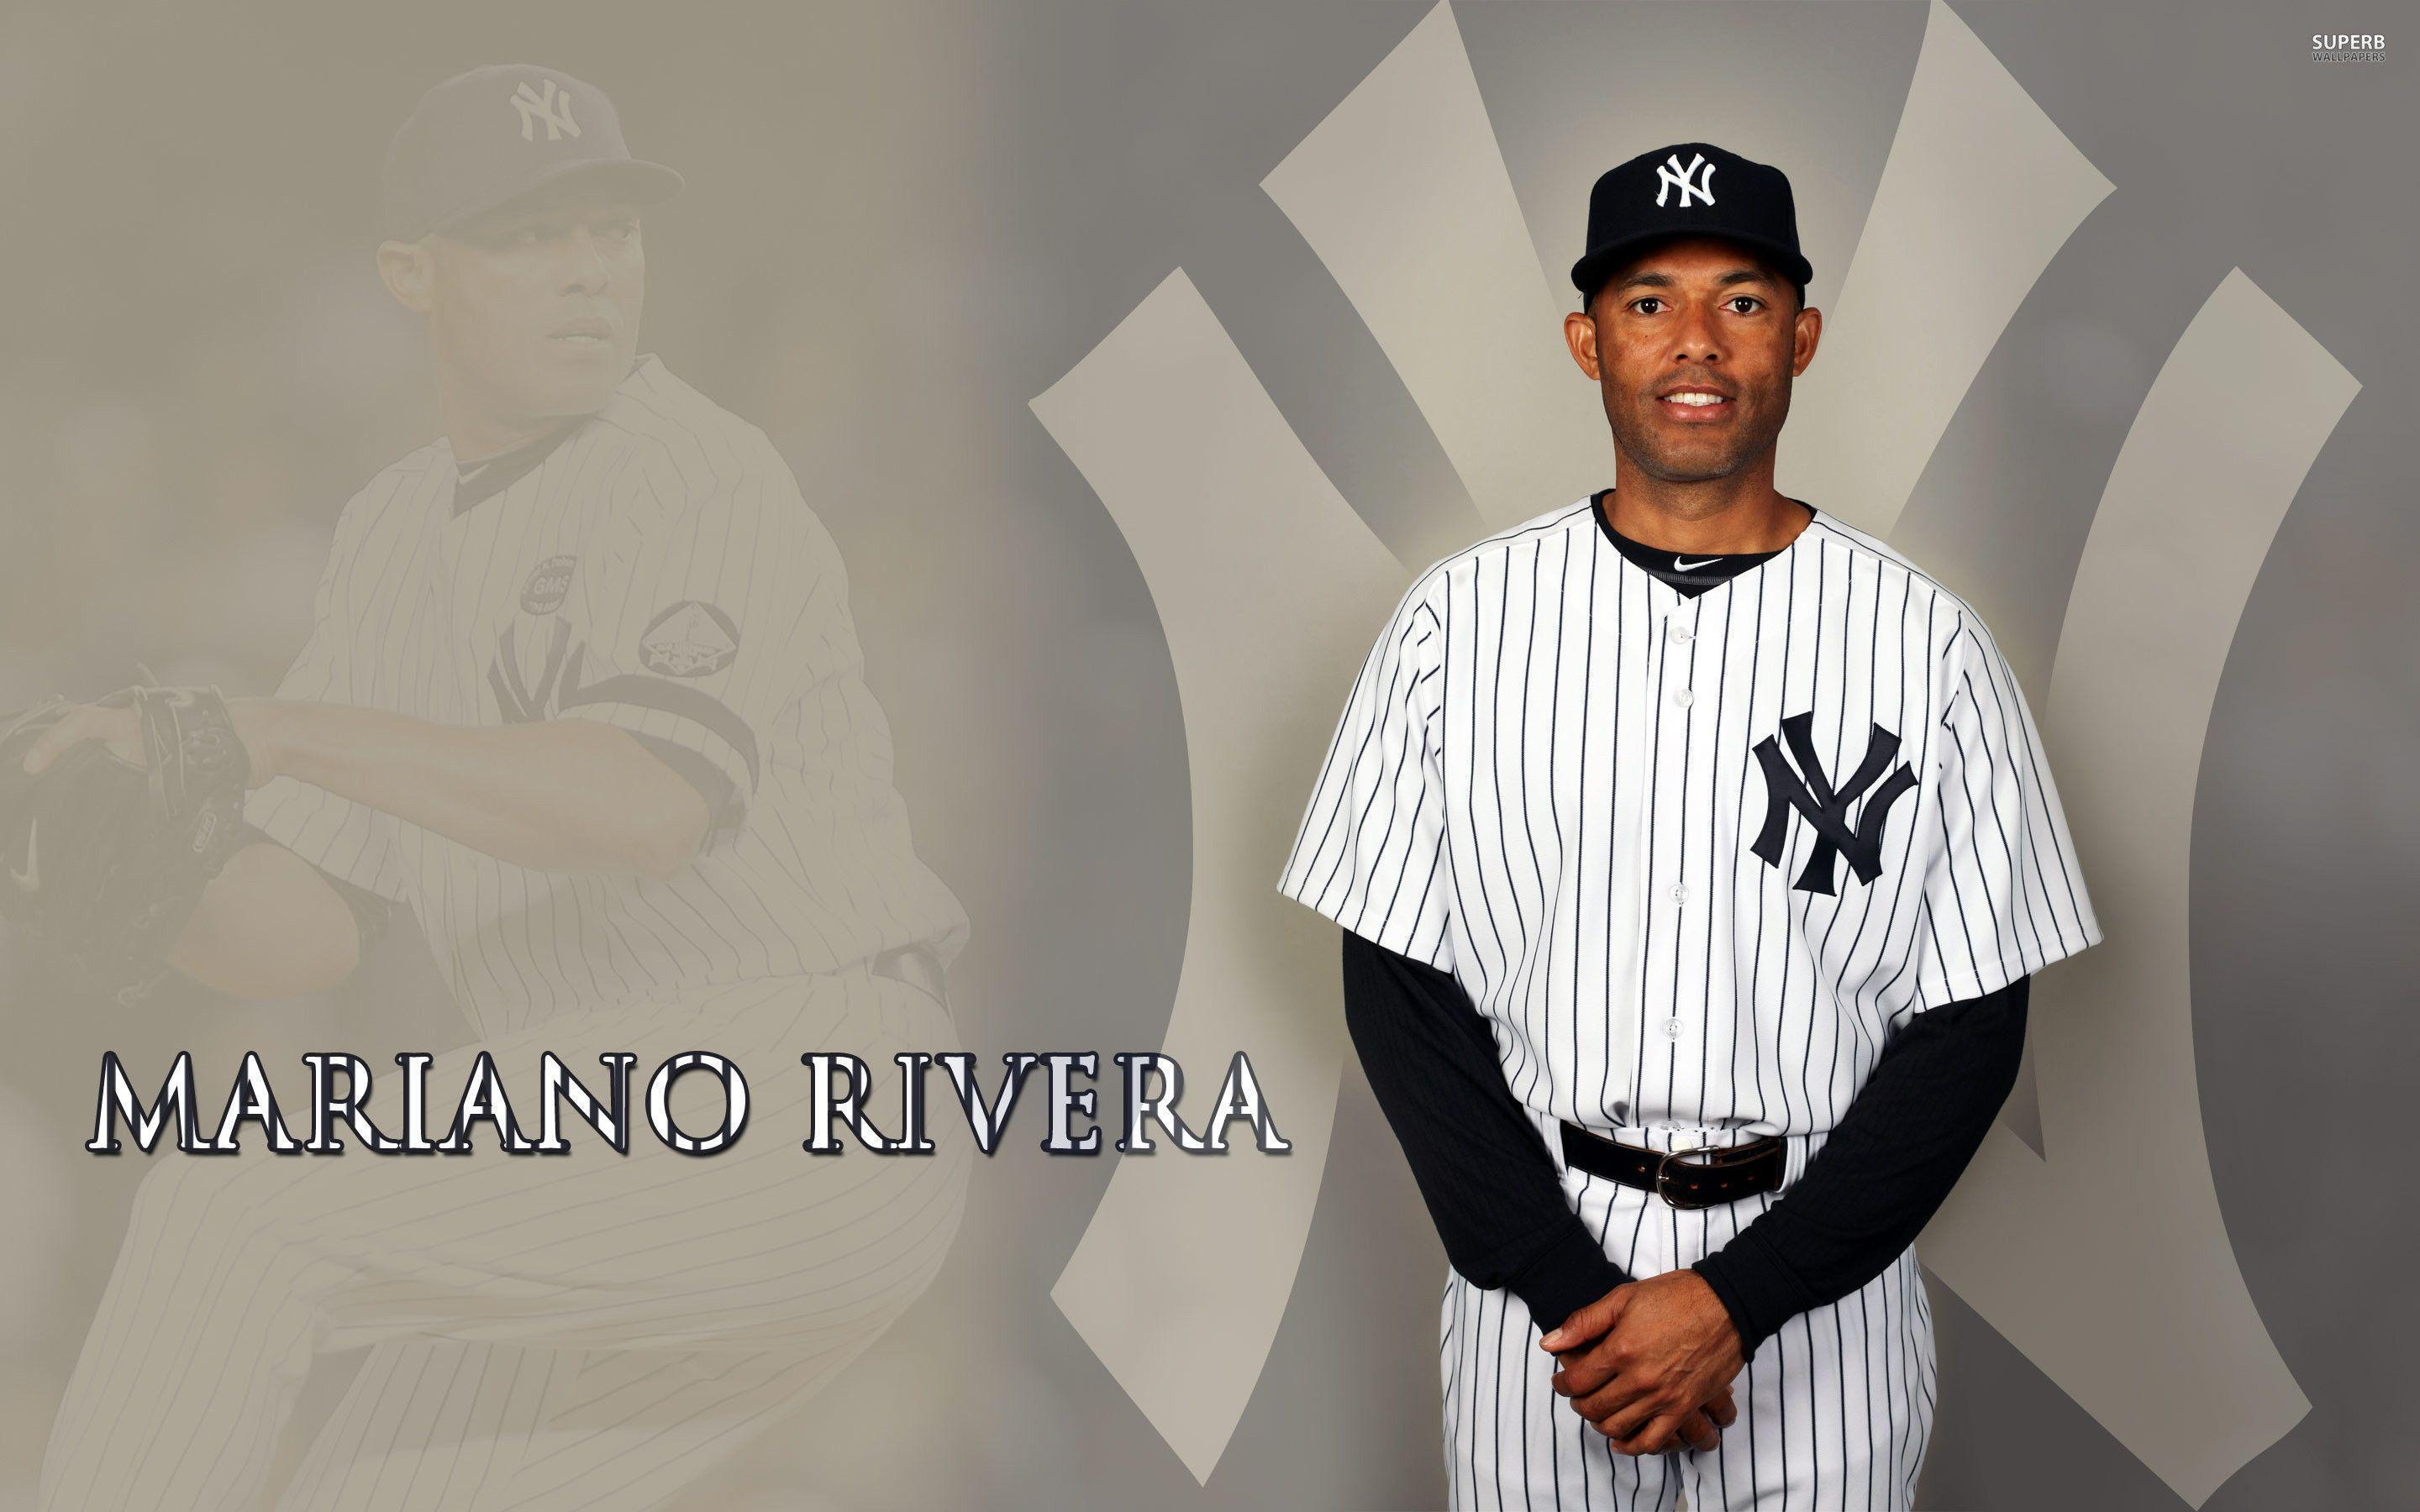 Mariano Rivera Wallpapers - Wallpaper Cave